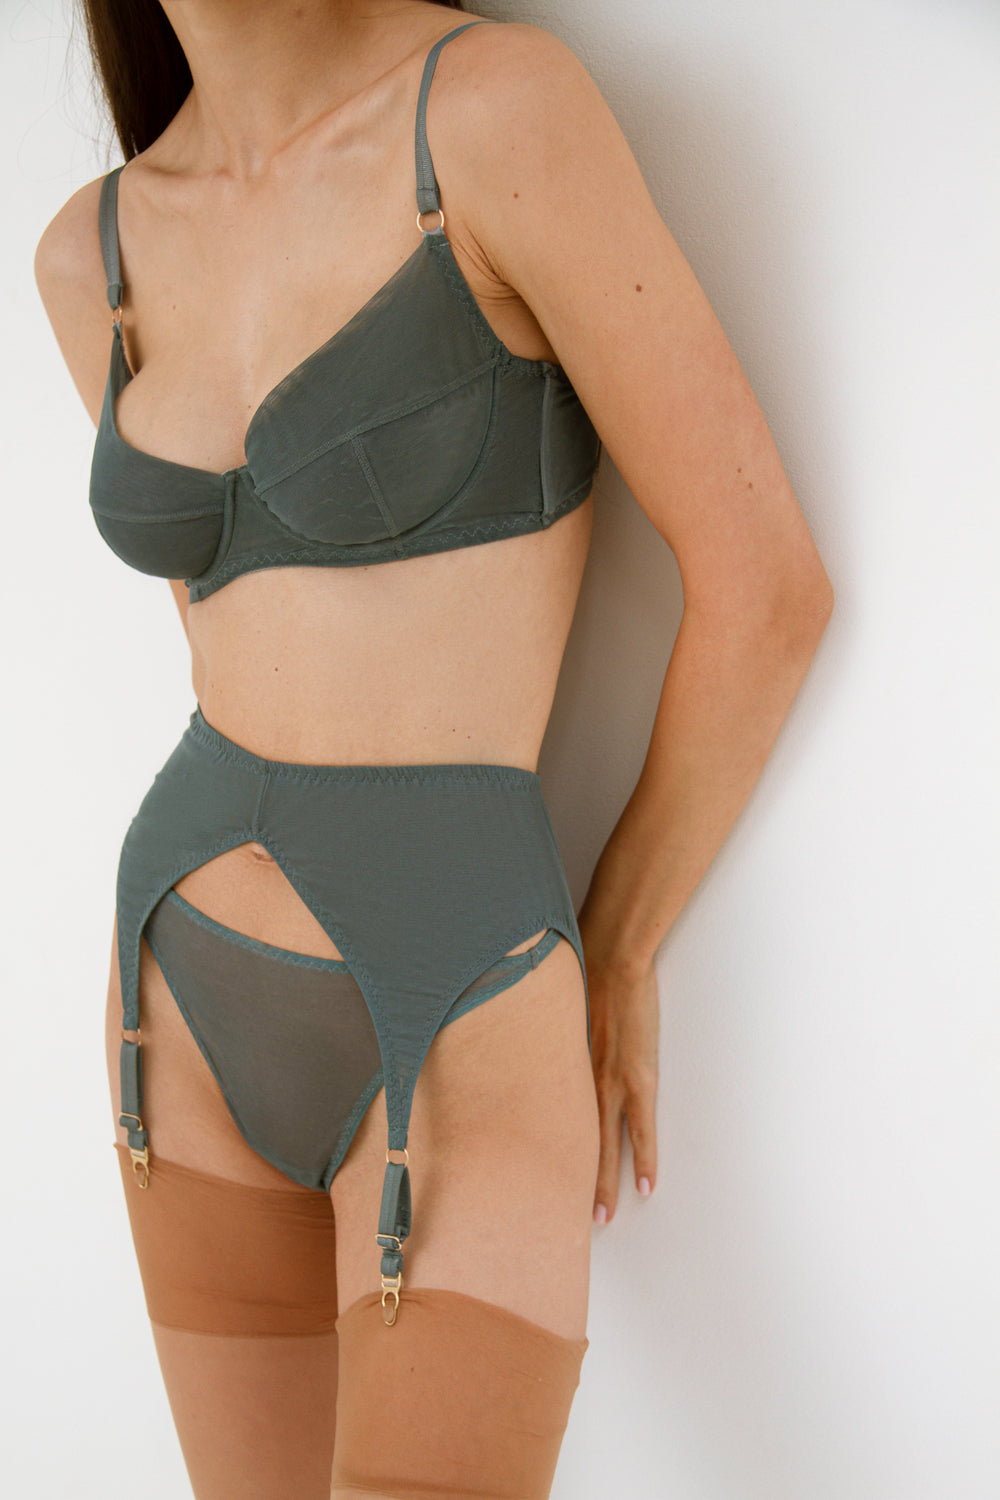 Diametra Bluestone high-waisted thongs